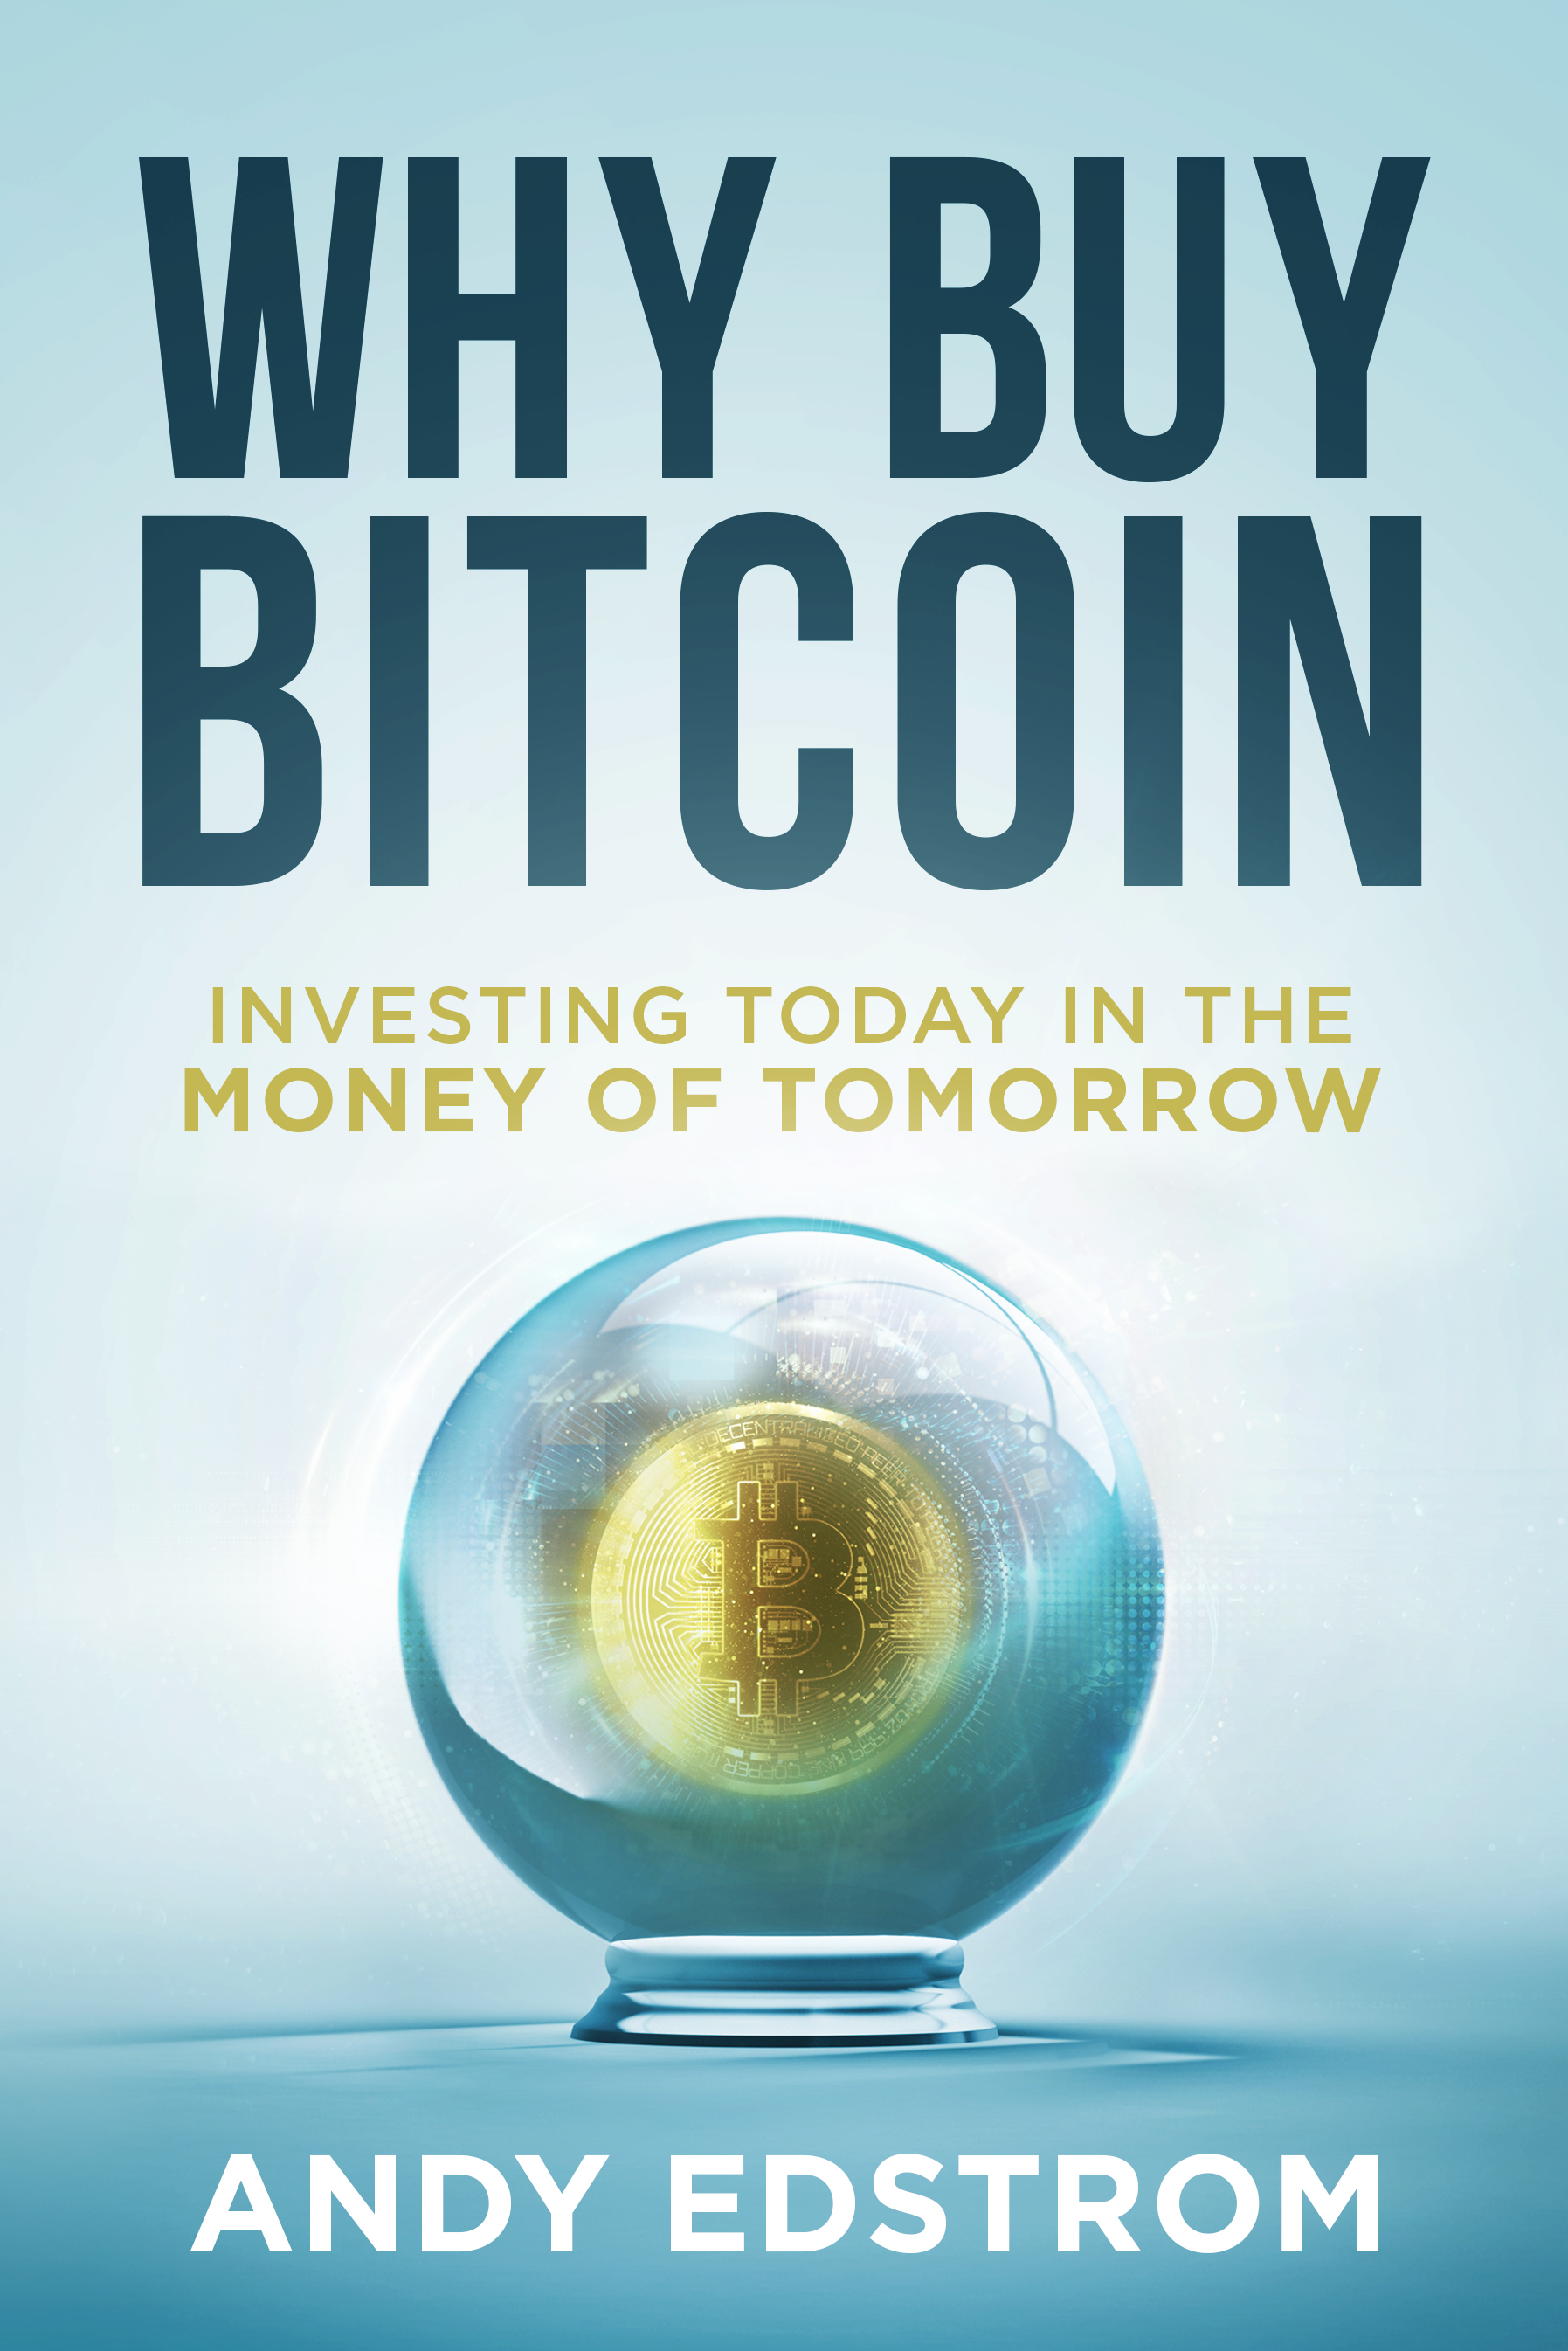 WhyBuyBitcoin_eBook_Cover